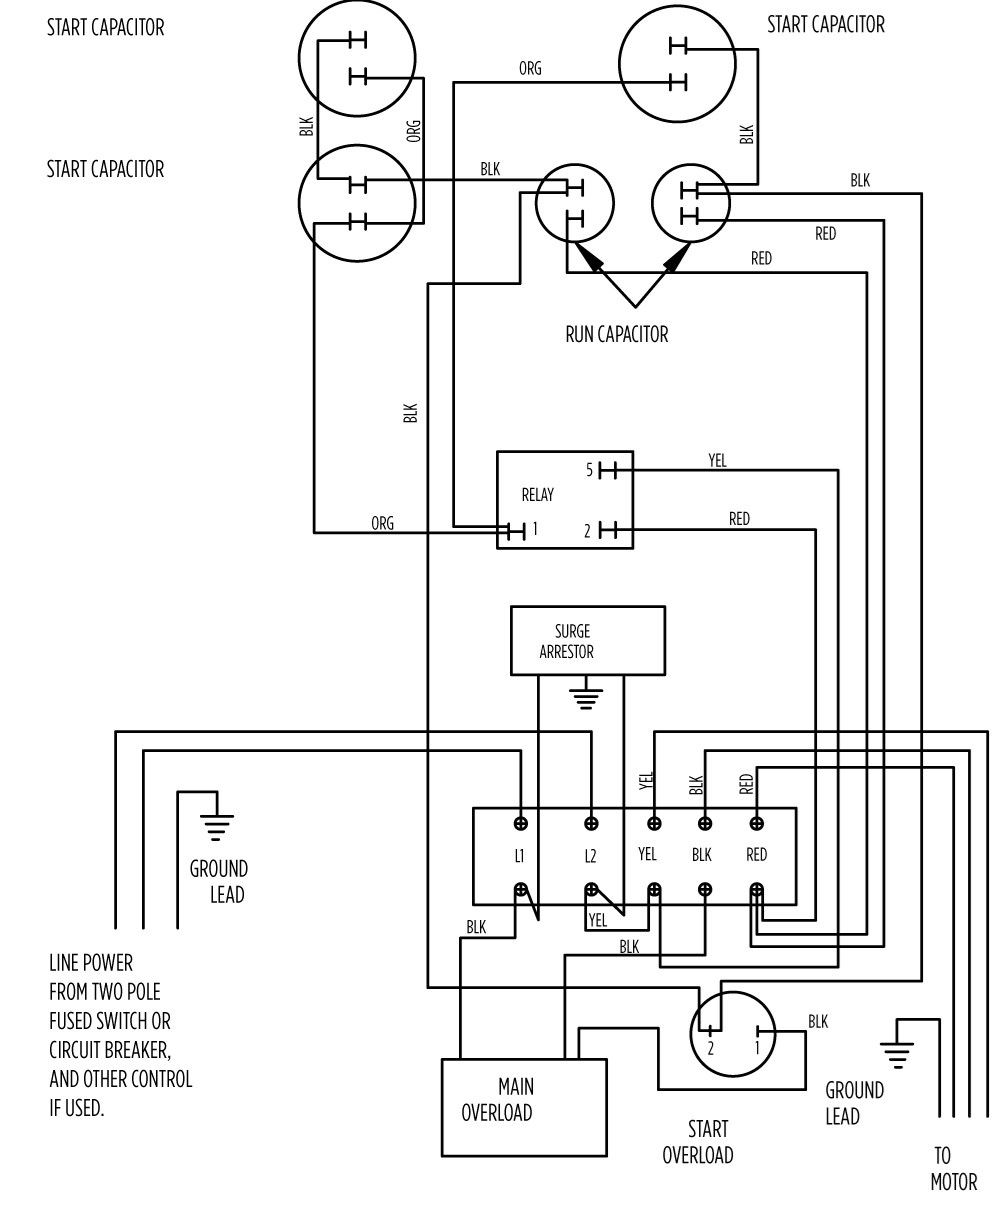 Aim Manual Page 57 Single Phase Motors And Controls Motor Control Wiring Diagram Ats 10 Hp Standard 282 202 9210 Or 9230